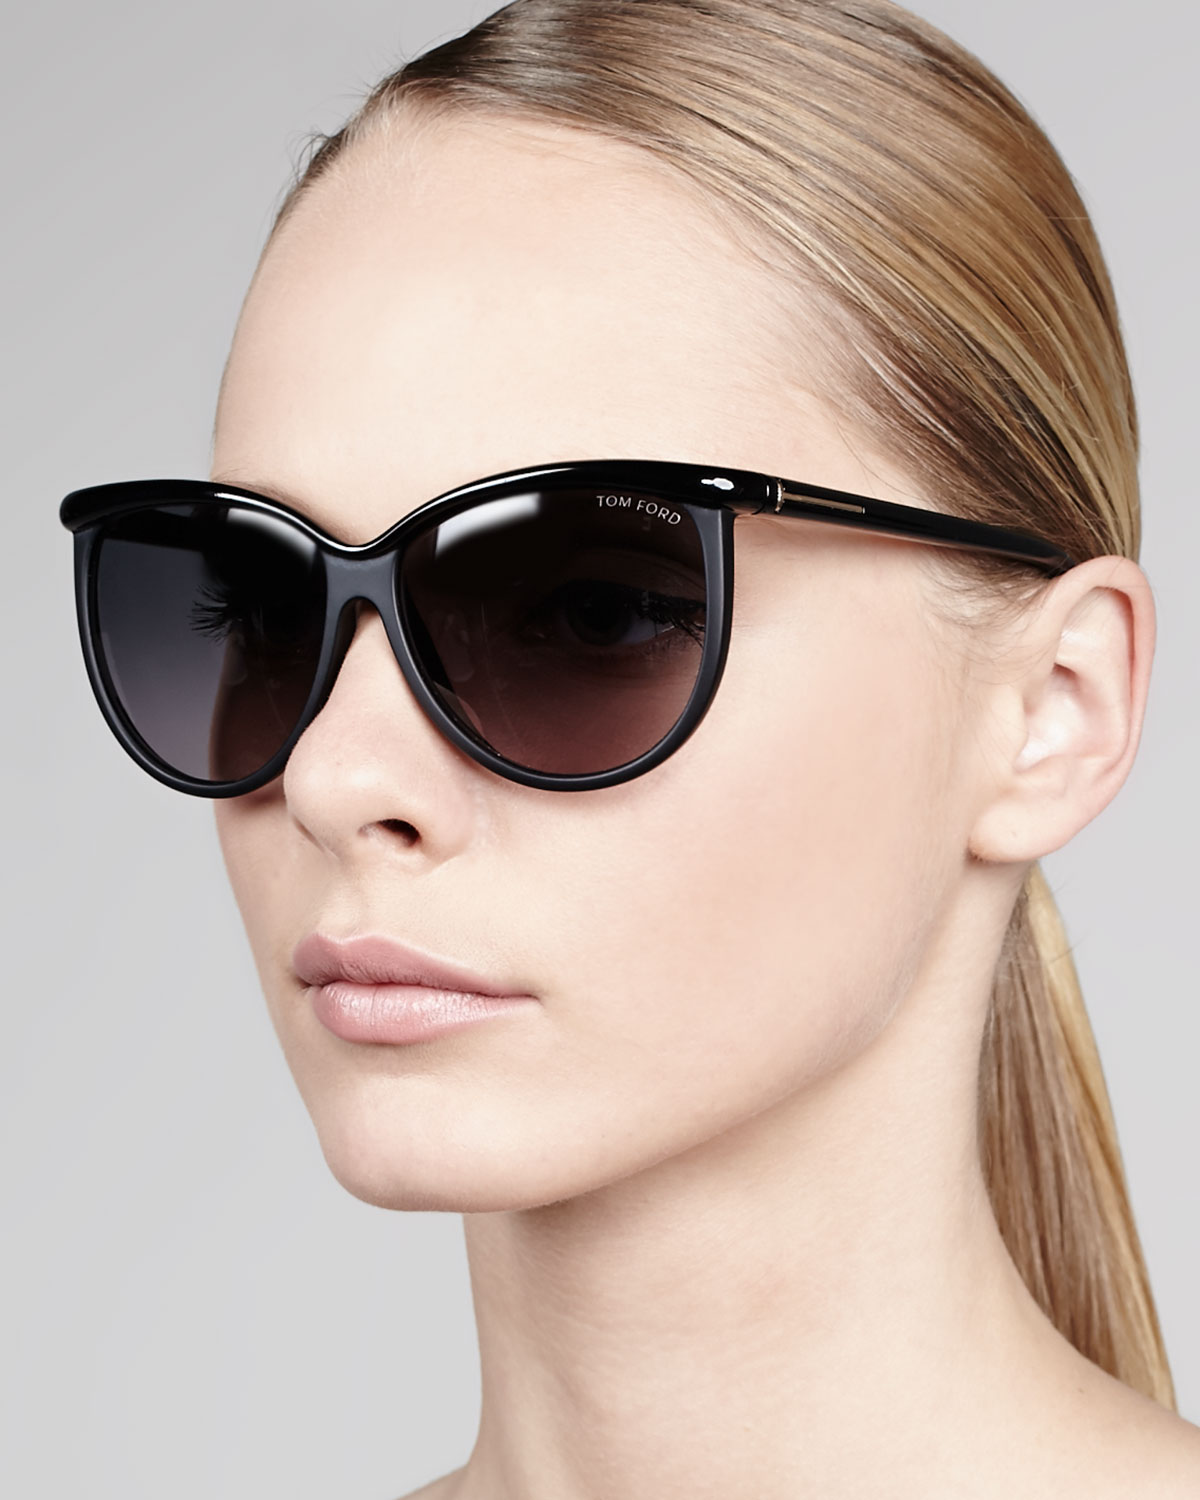 Tom Ford Penelope Sunglasses  tom ford josephine enamel sunglasses black in black lyst